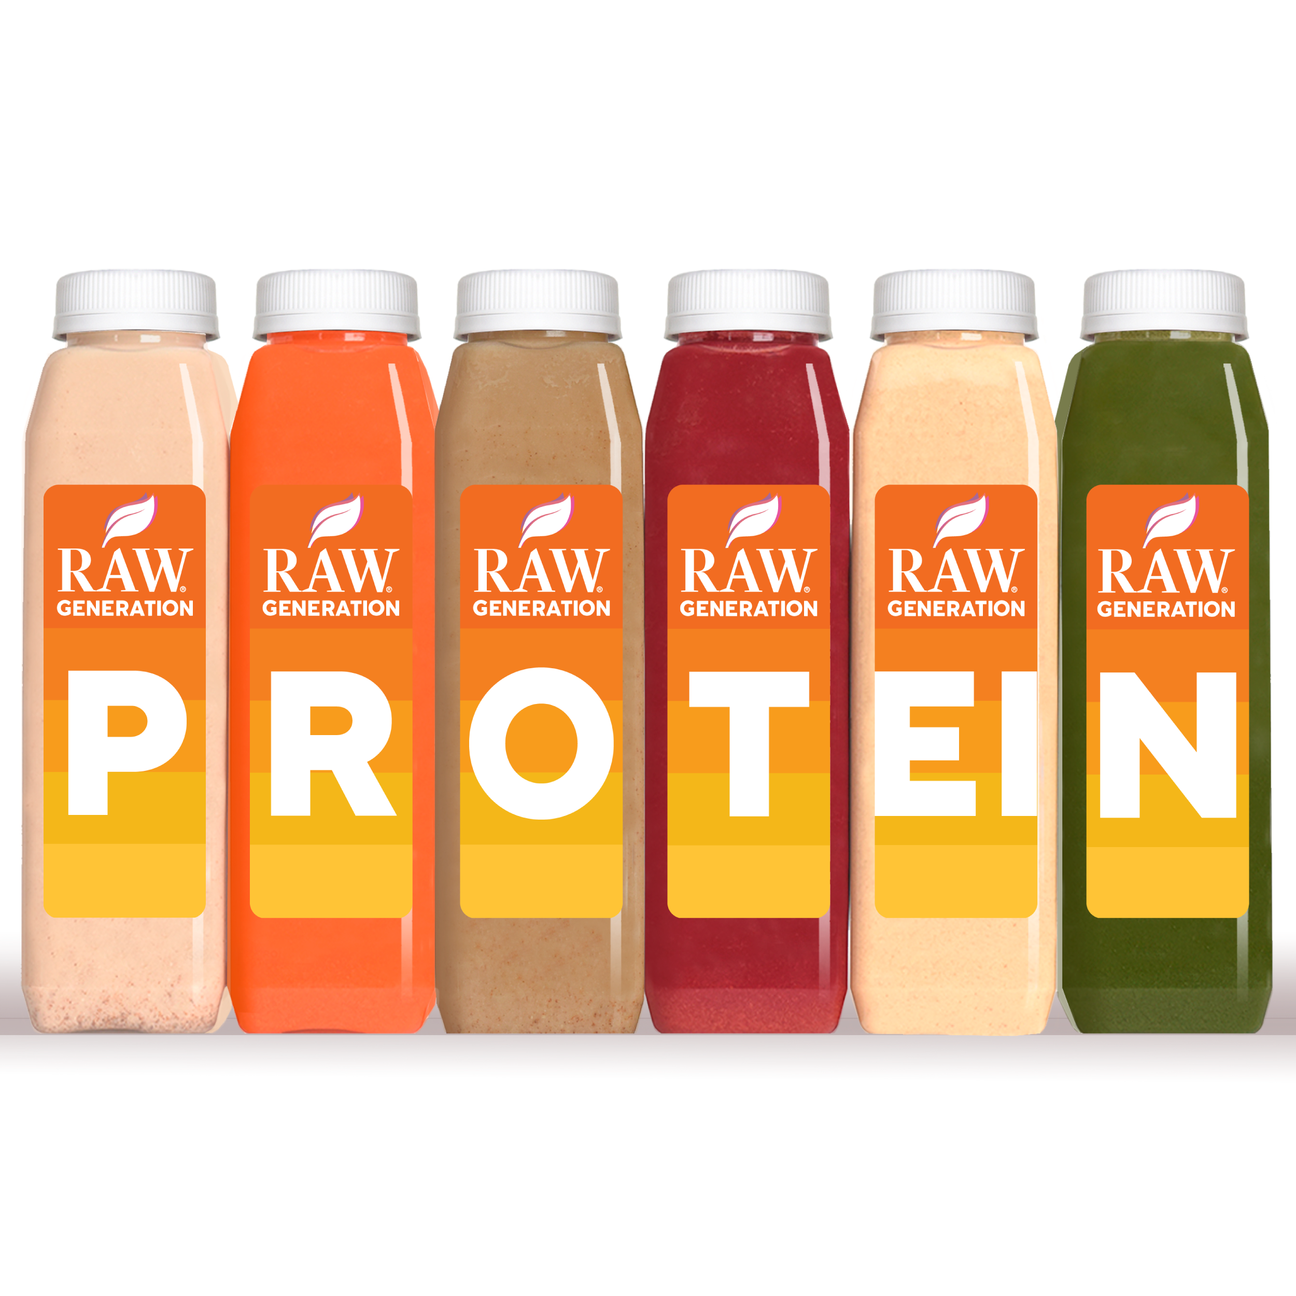 Raw Generation Protein Cleanse